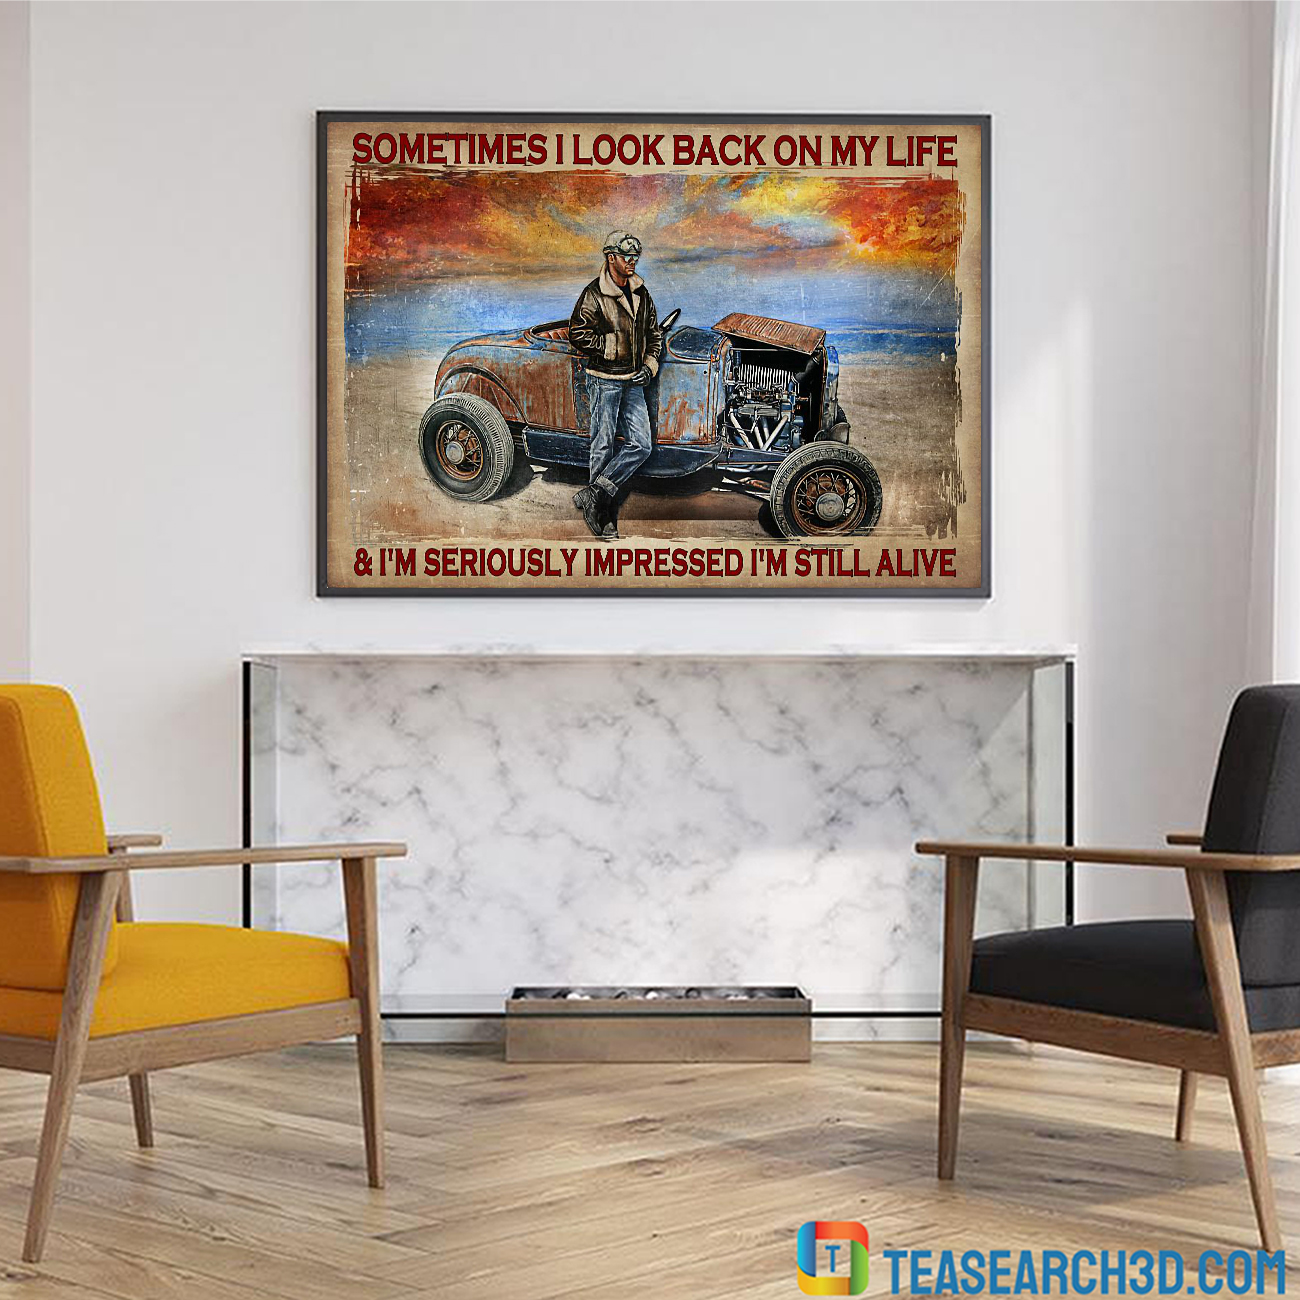 Hot rod sometimes I look back on my life poster A3